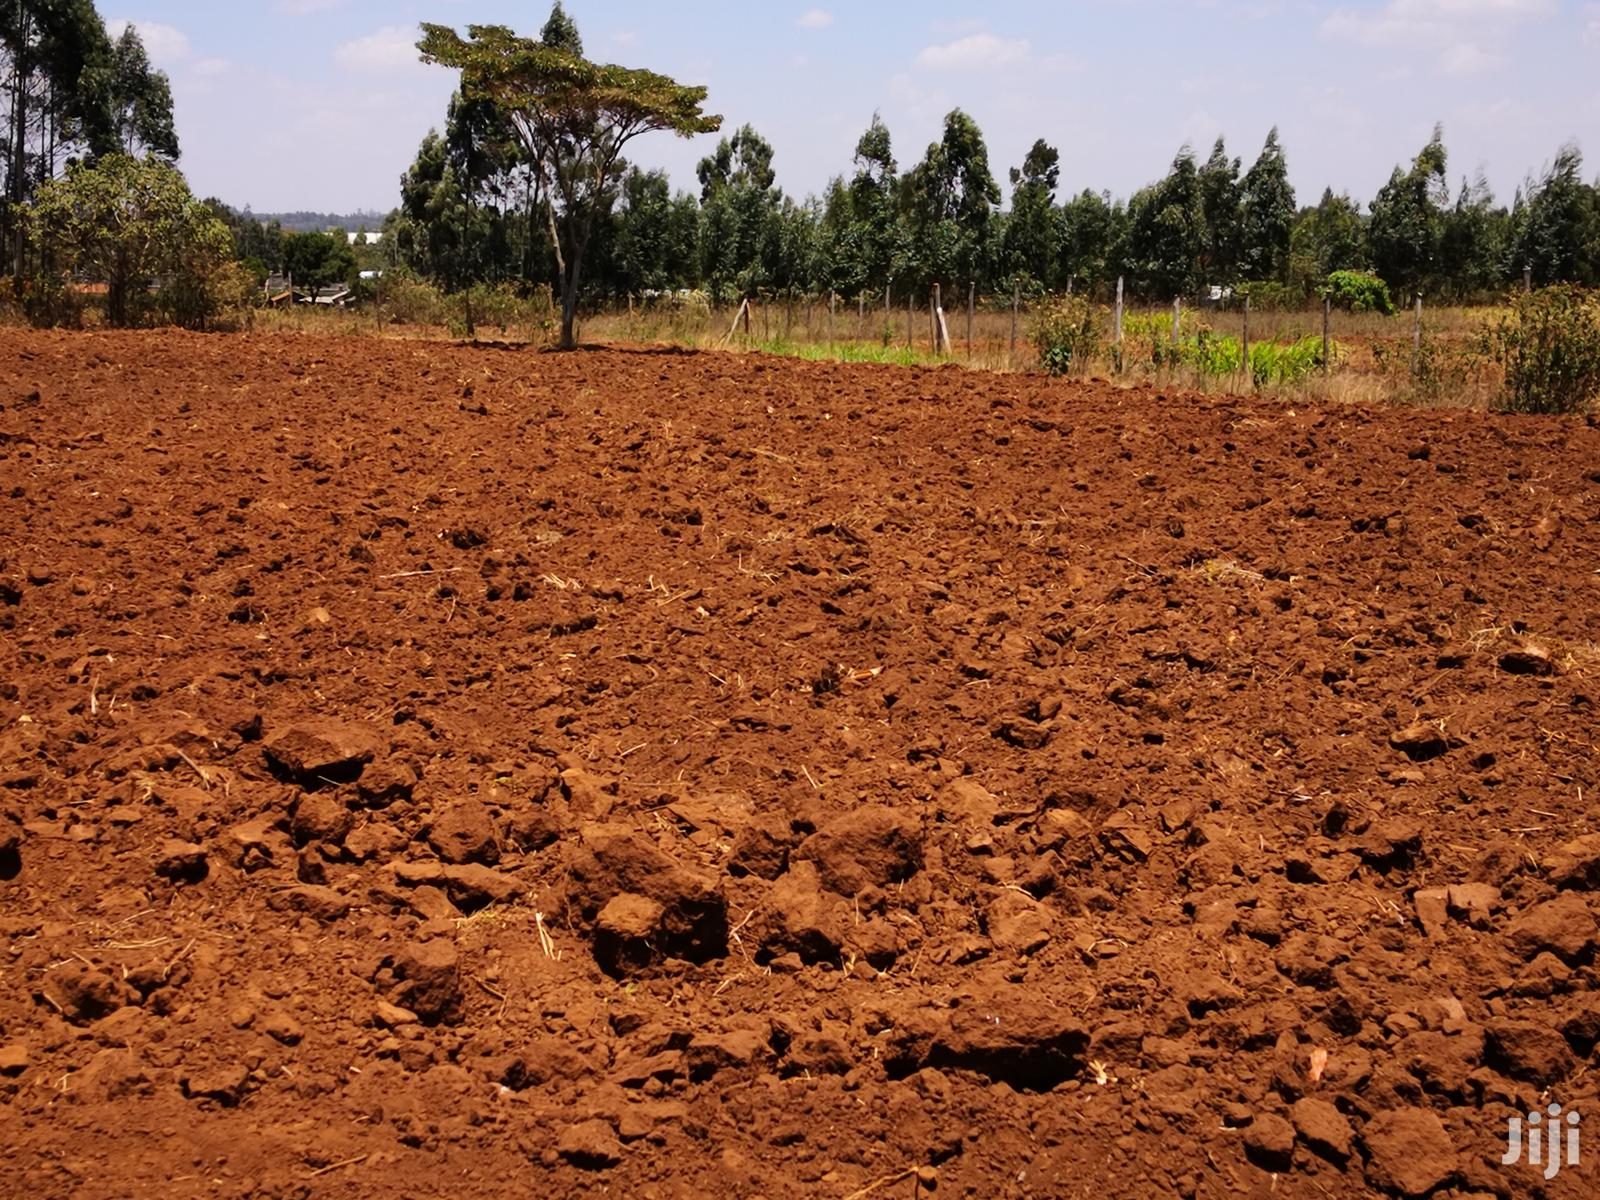 1 Acre for Sale in Kamangu Kikuyu Kiambu Next to Tarmac.